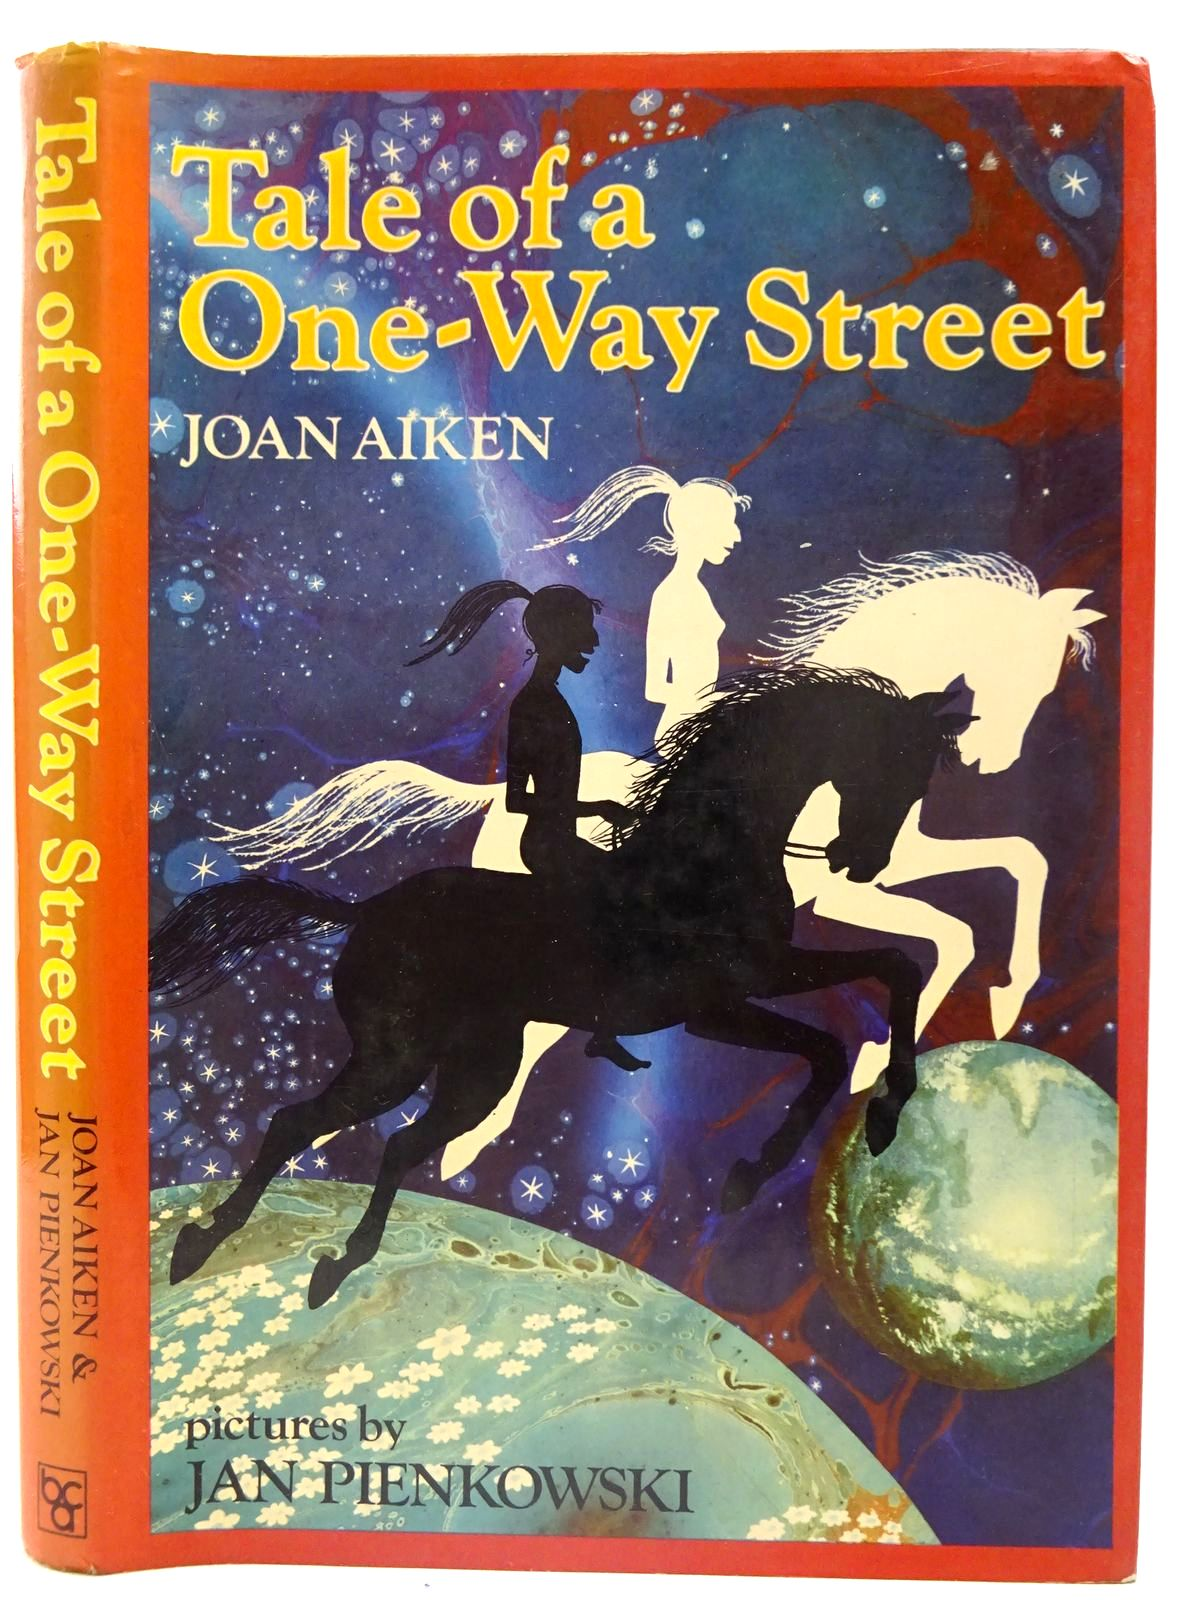 Photo of TALE OF A ONE-WAY STREET written by Aiken, Joan illustrated by Pienkowski, Jan published by Book Club Associates (STOCK CODE: 2126728)  for sale by Stella & Rose's Books